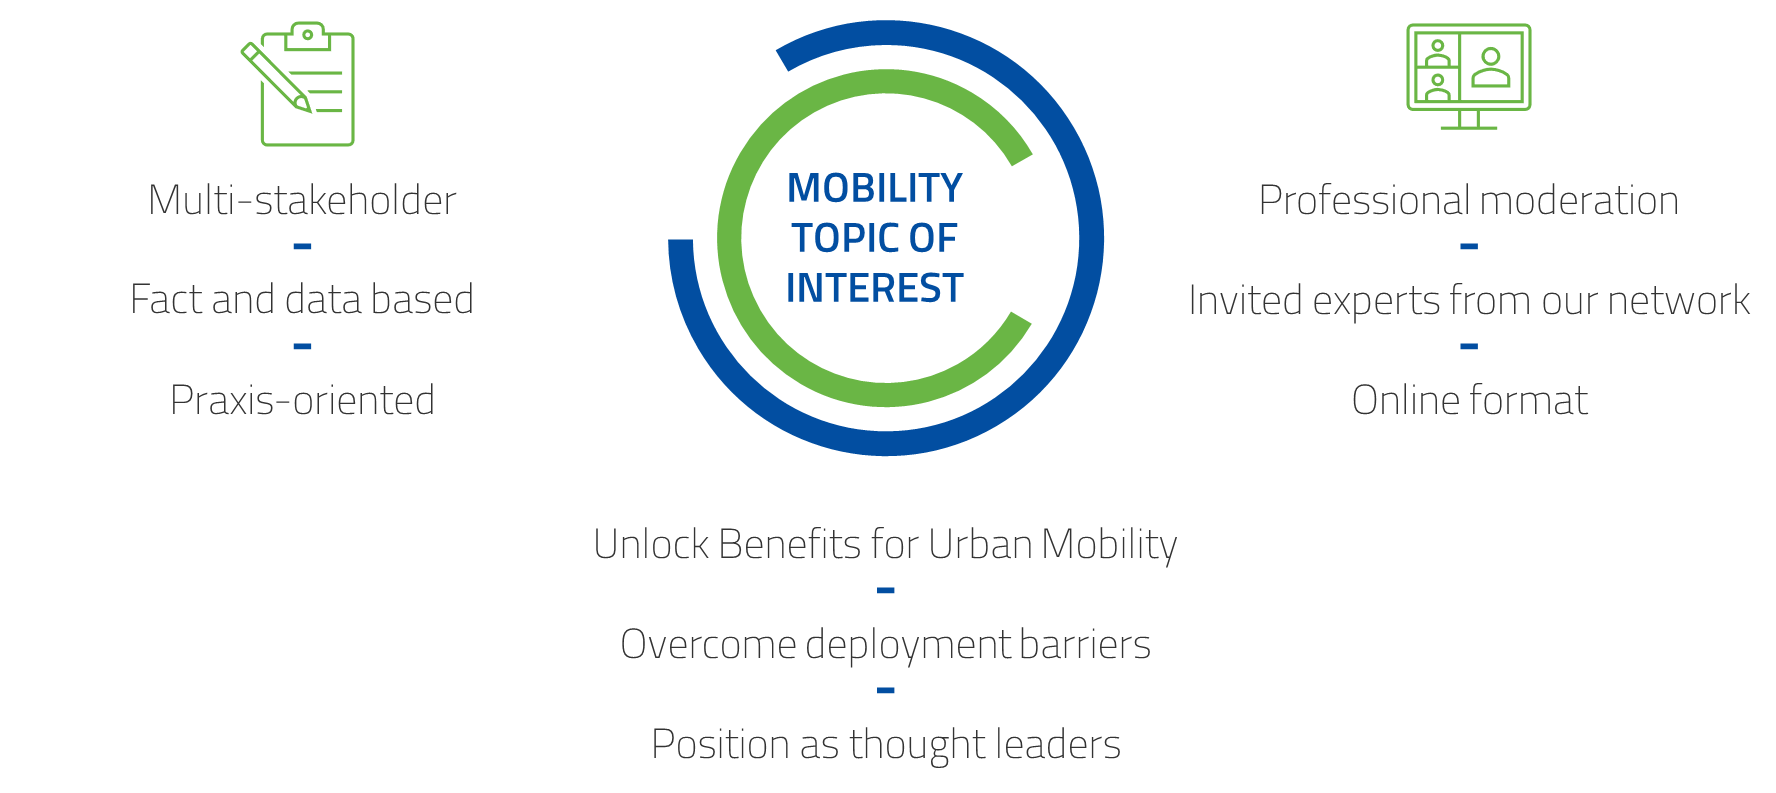 Mobility Topic of Interest